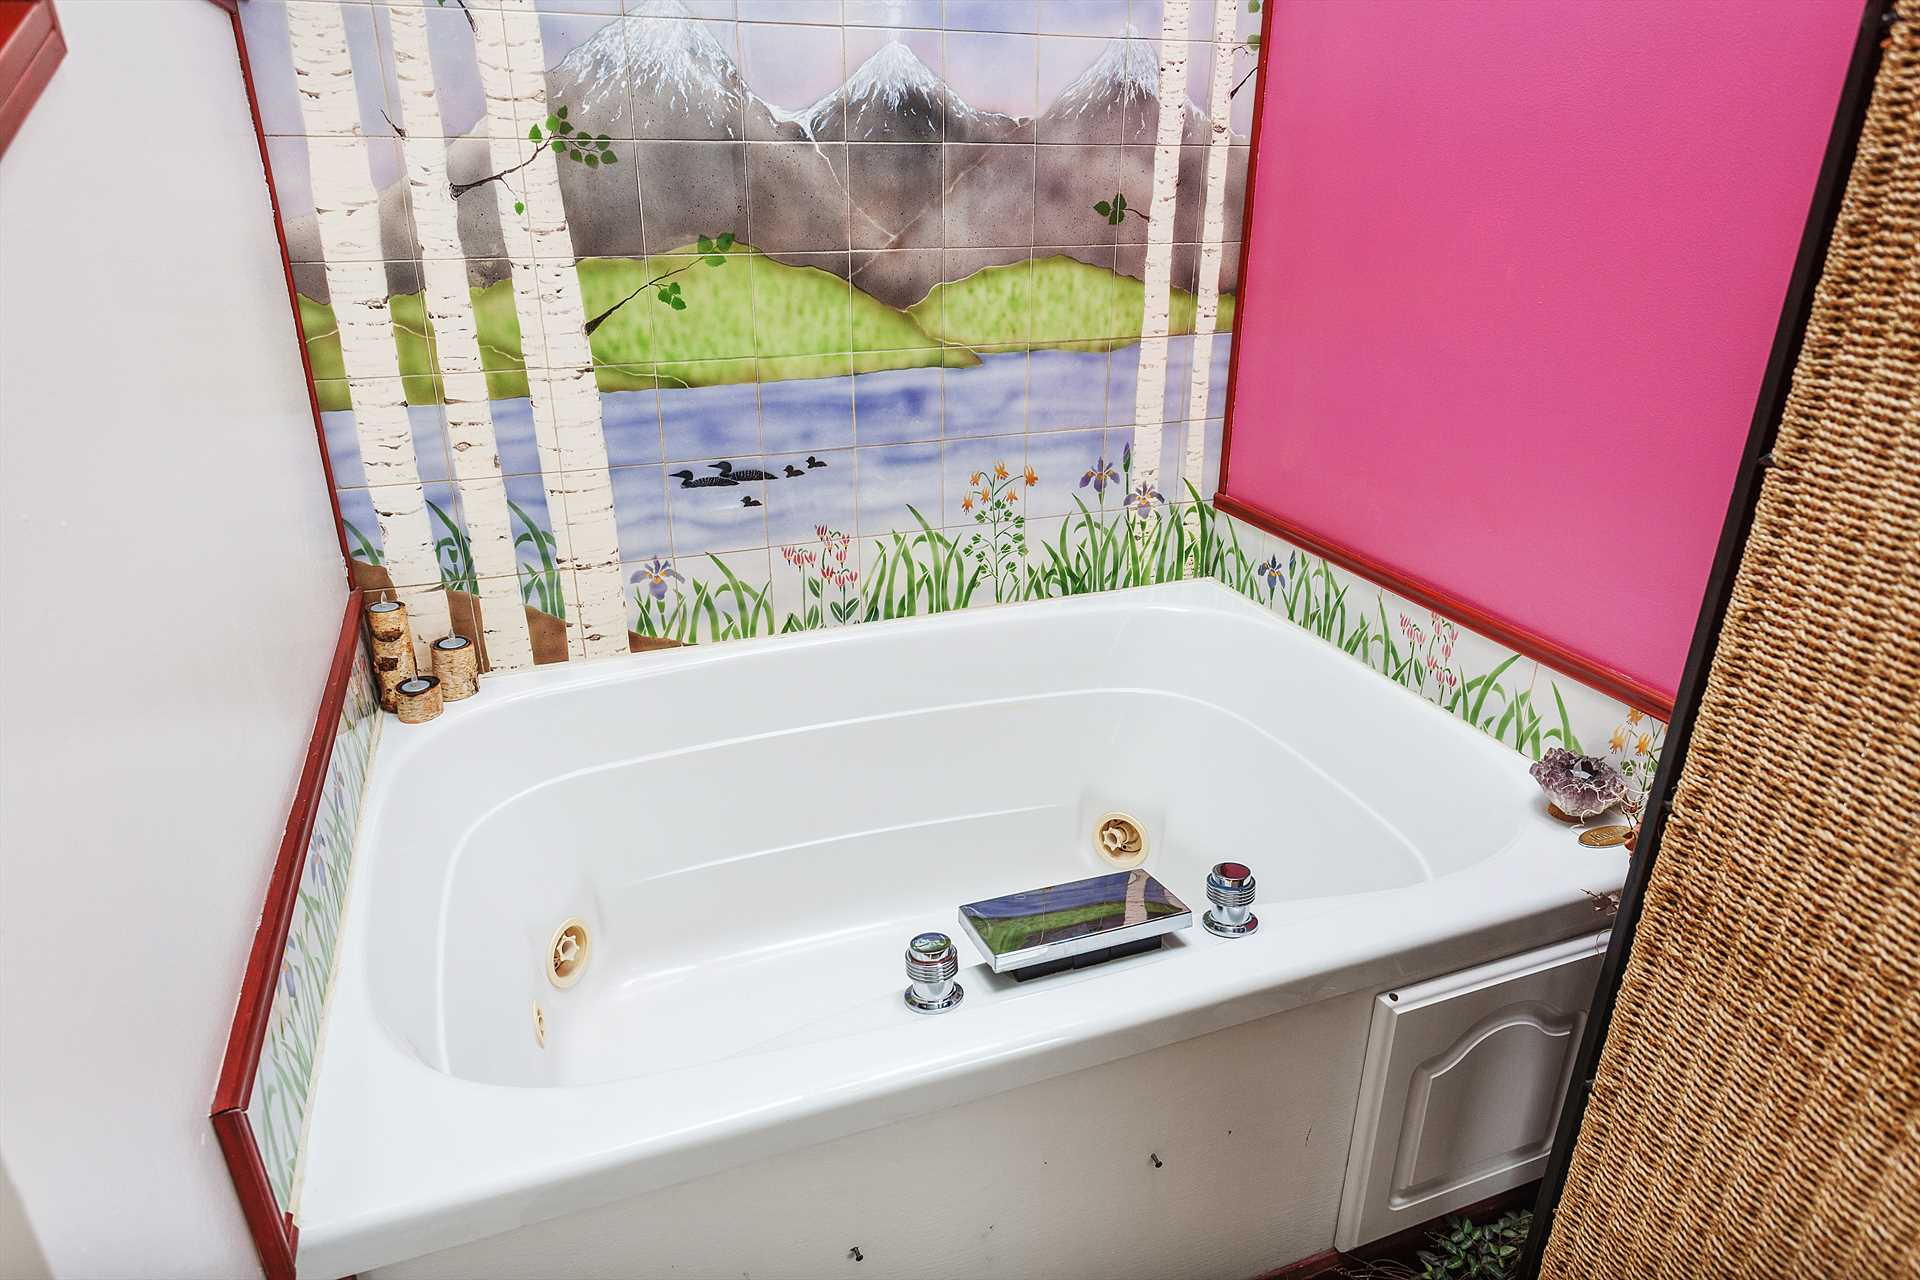 Jaccuzi Bath for Two